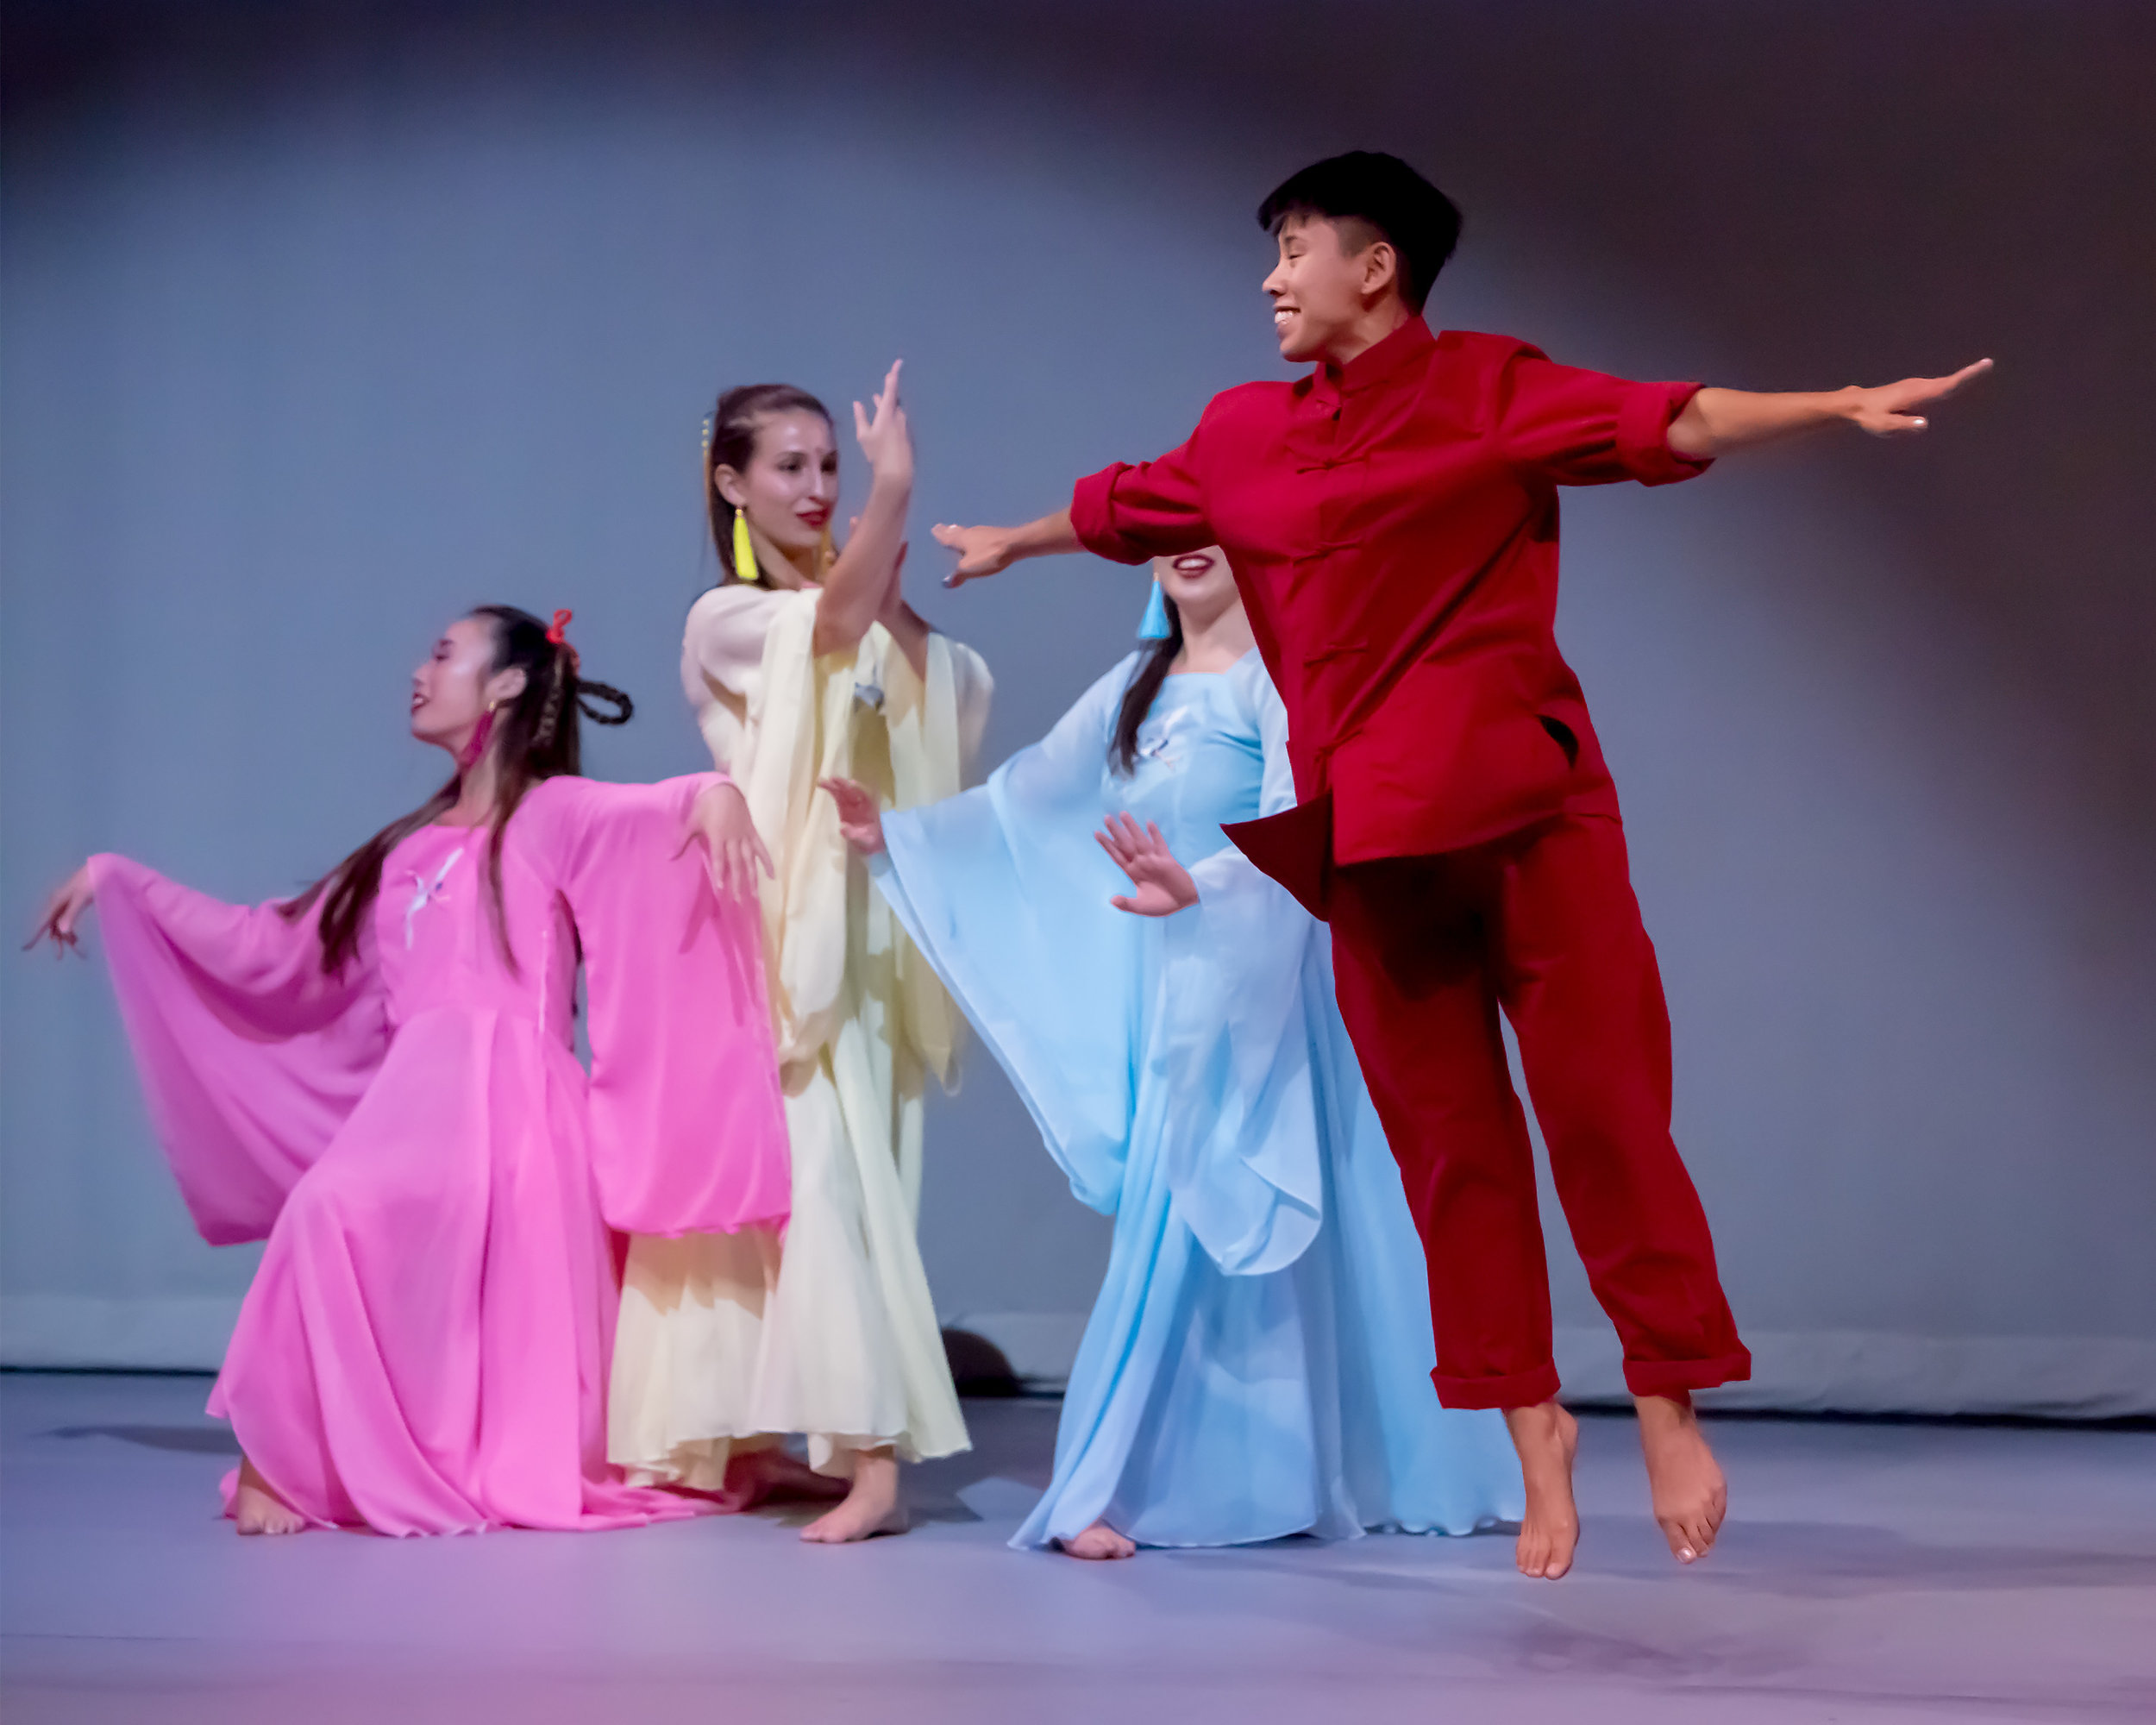 """Kristianne Salcenes  (red outfit) as the Inn Keeper in """"Lord of the Cranes"""" (photo: David Tuman)"""